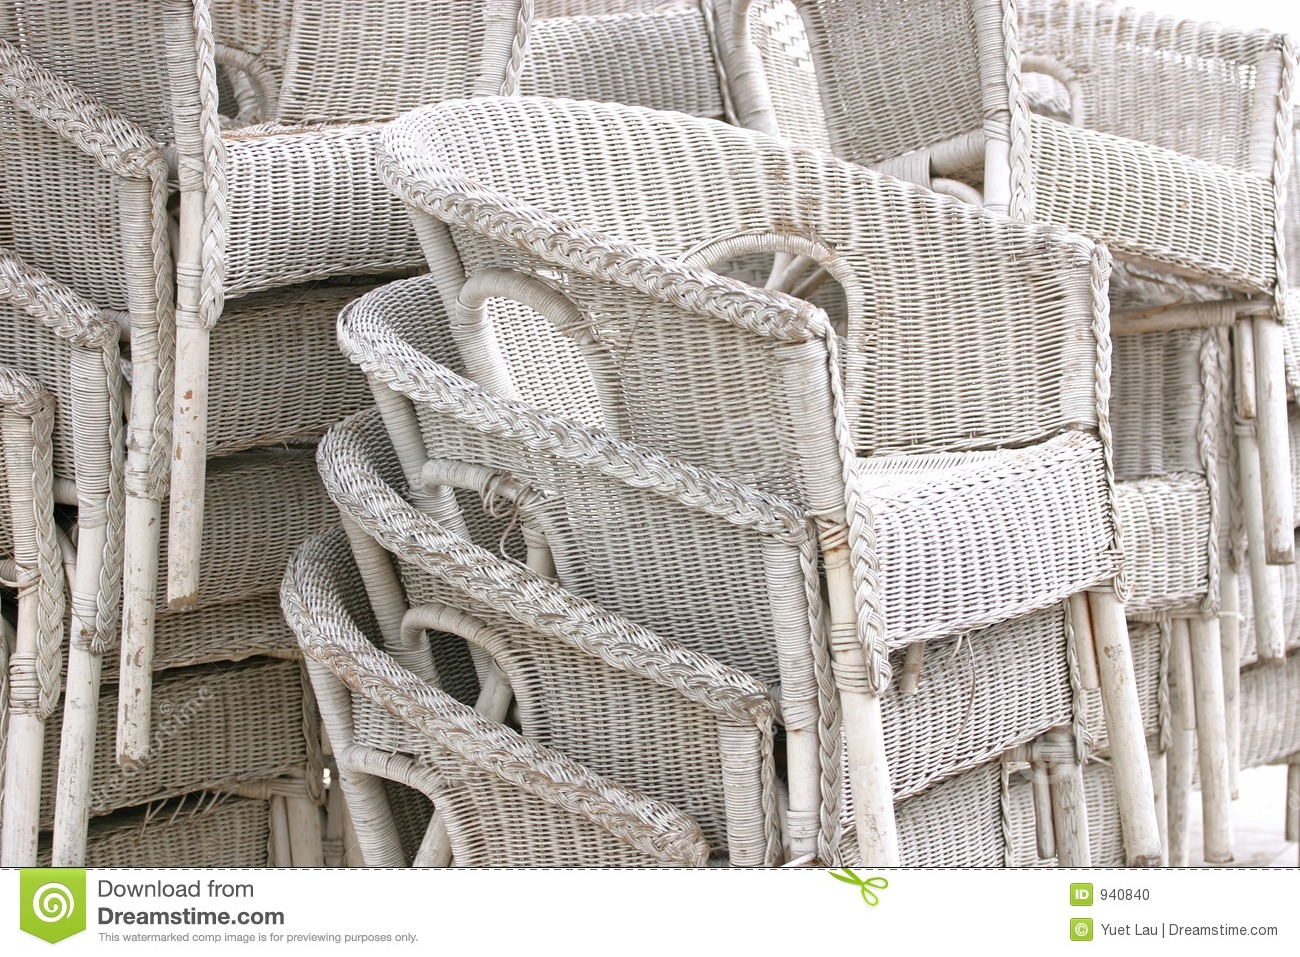 bistro chairs dining room ice cream parlor chair white rattan stock photo - image: 940840